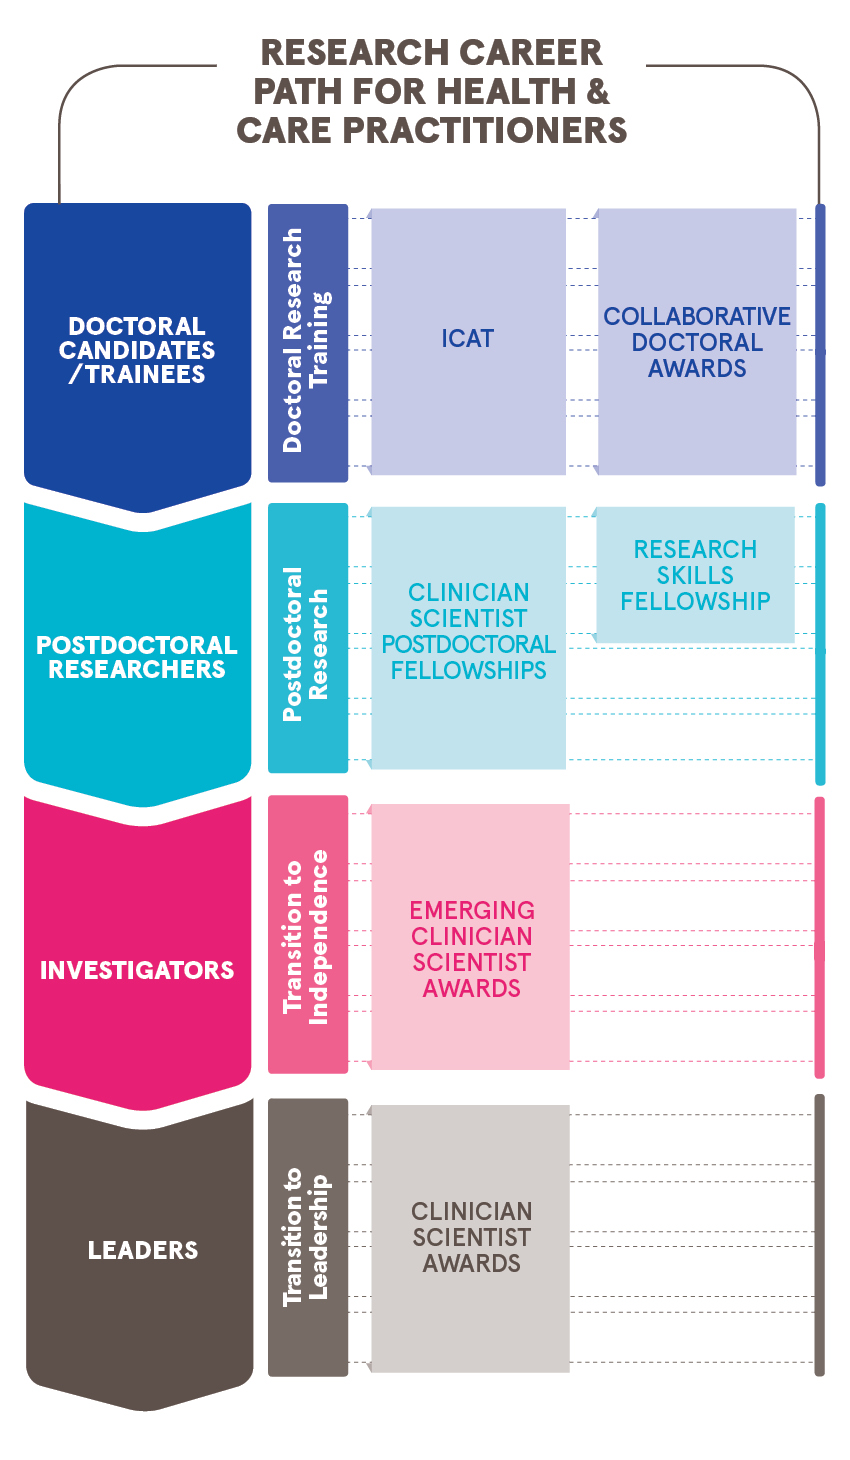 Health and care practitioner career path diagram